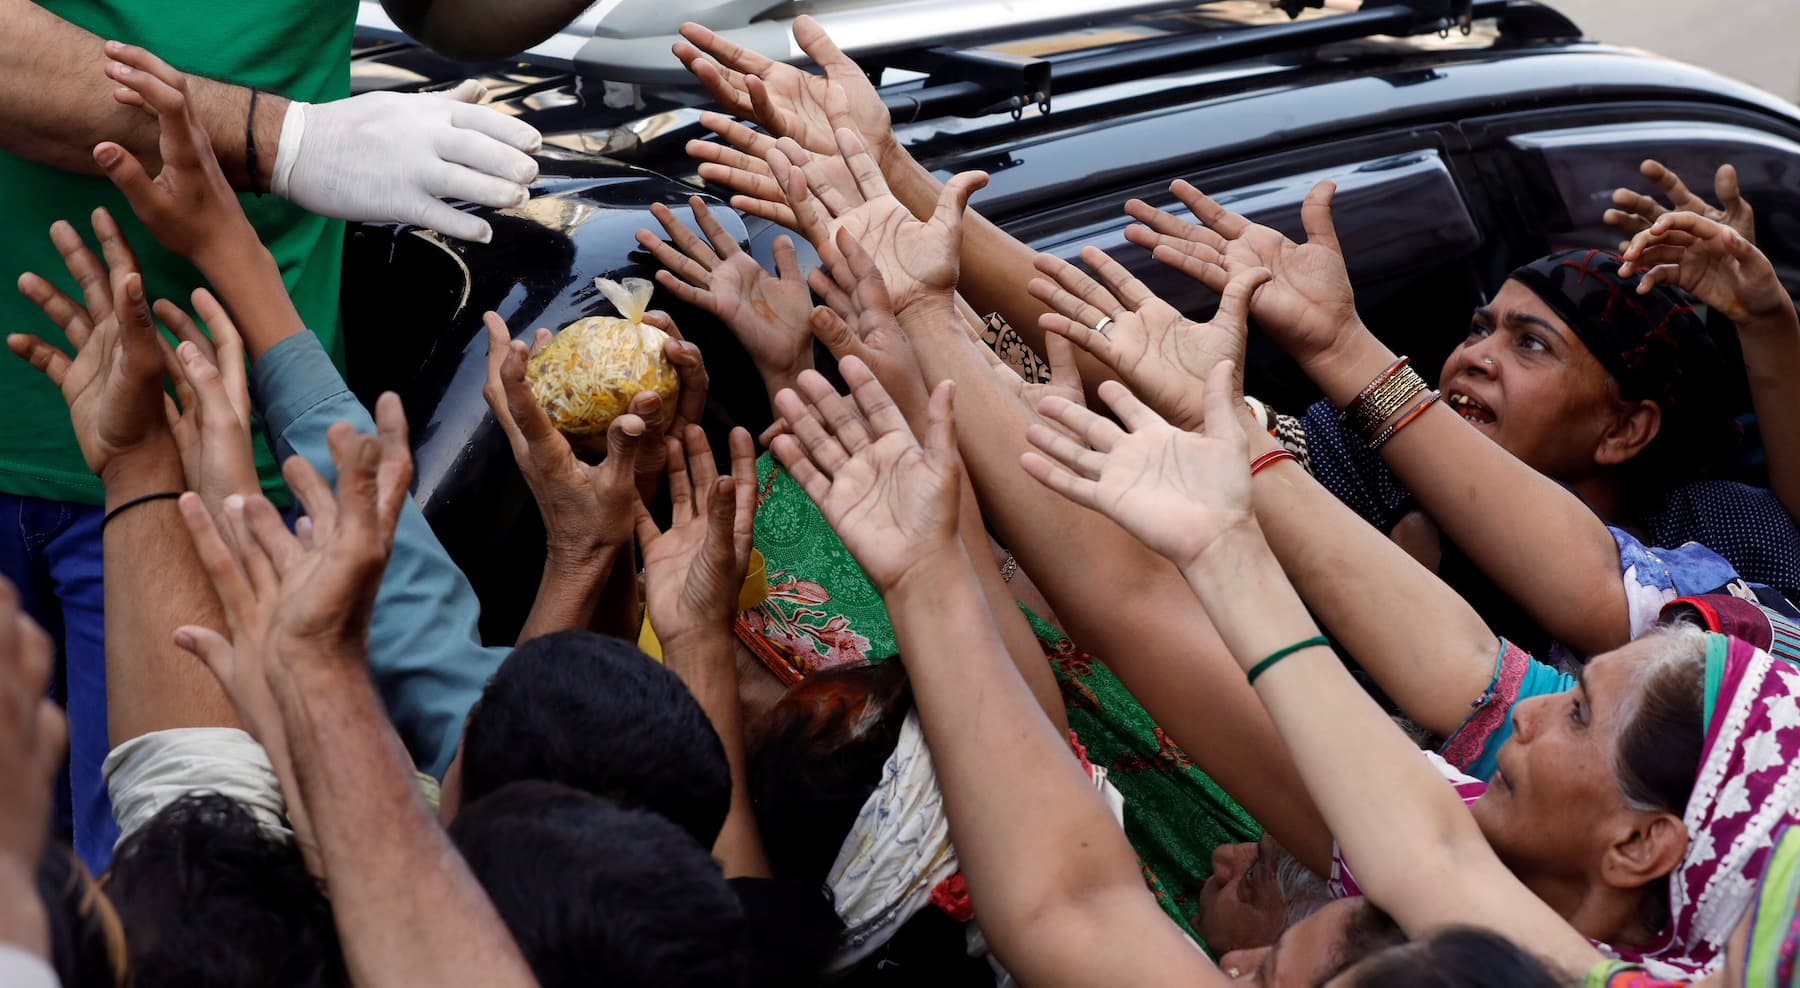 People reach out to get a charity food handout during a lockdown after Pakistan shut all markets, public places and discouraged large gatherings amid an outbreak of the coronavirus disease (COVID-19), in Karachi, Pakistan, March 30, 2020. REUTERS/Akhtar Soomro